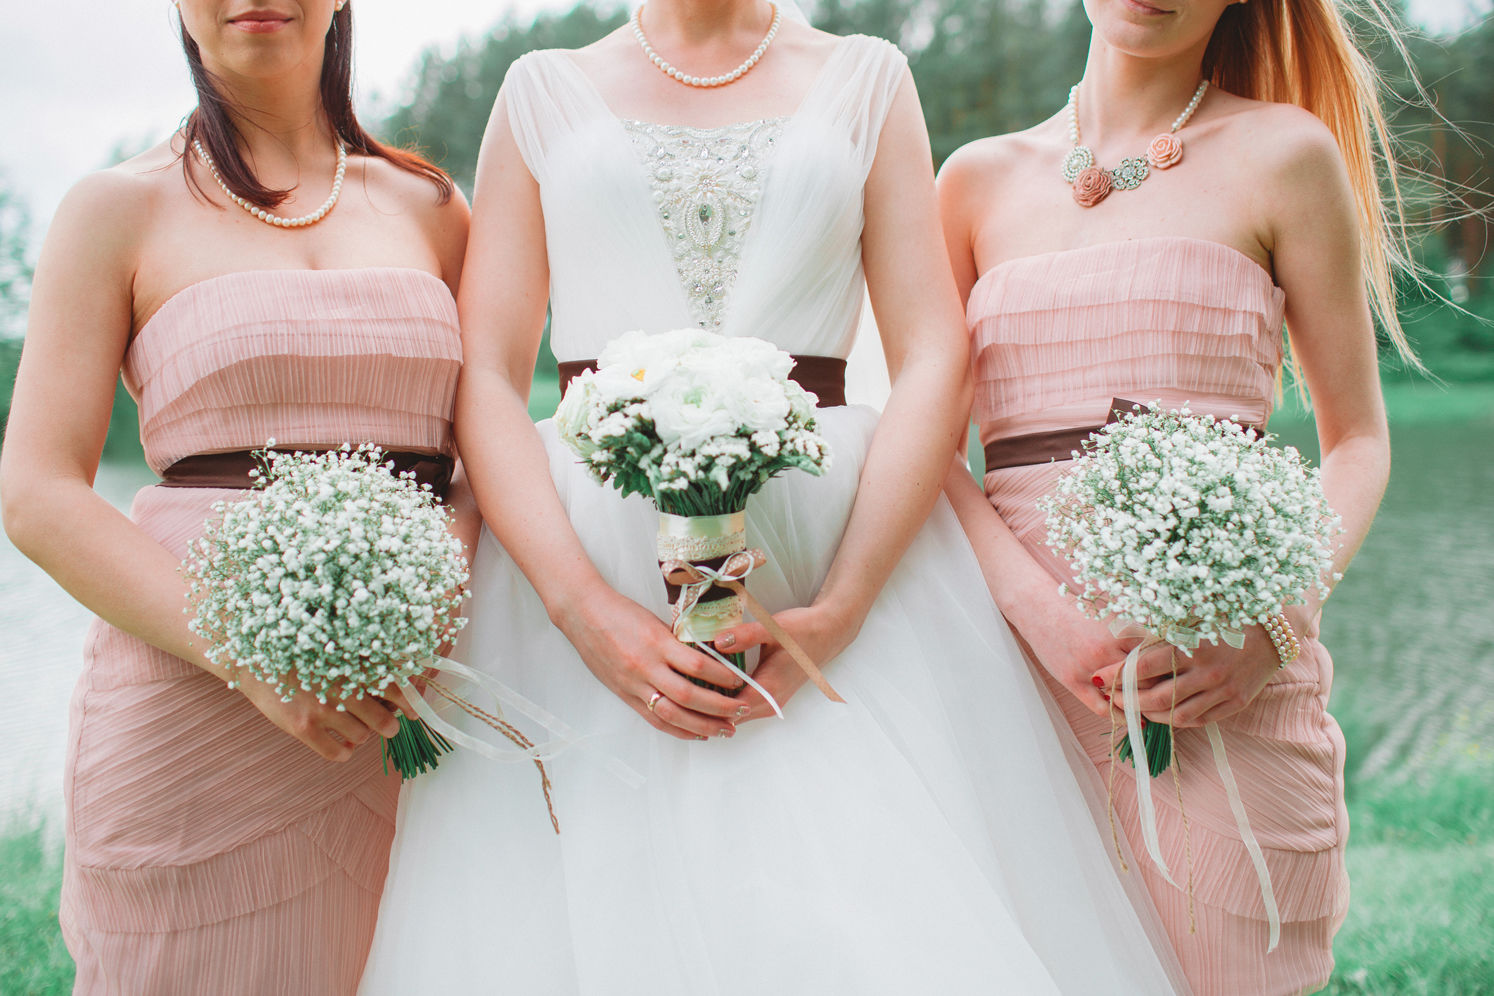 5 Things You Should Never Ask Your Bridesmaids to Do